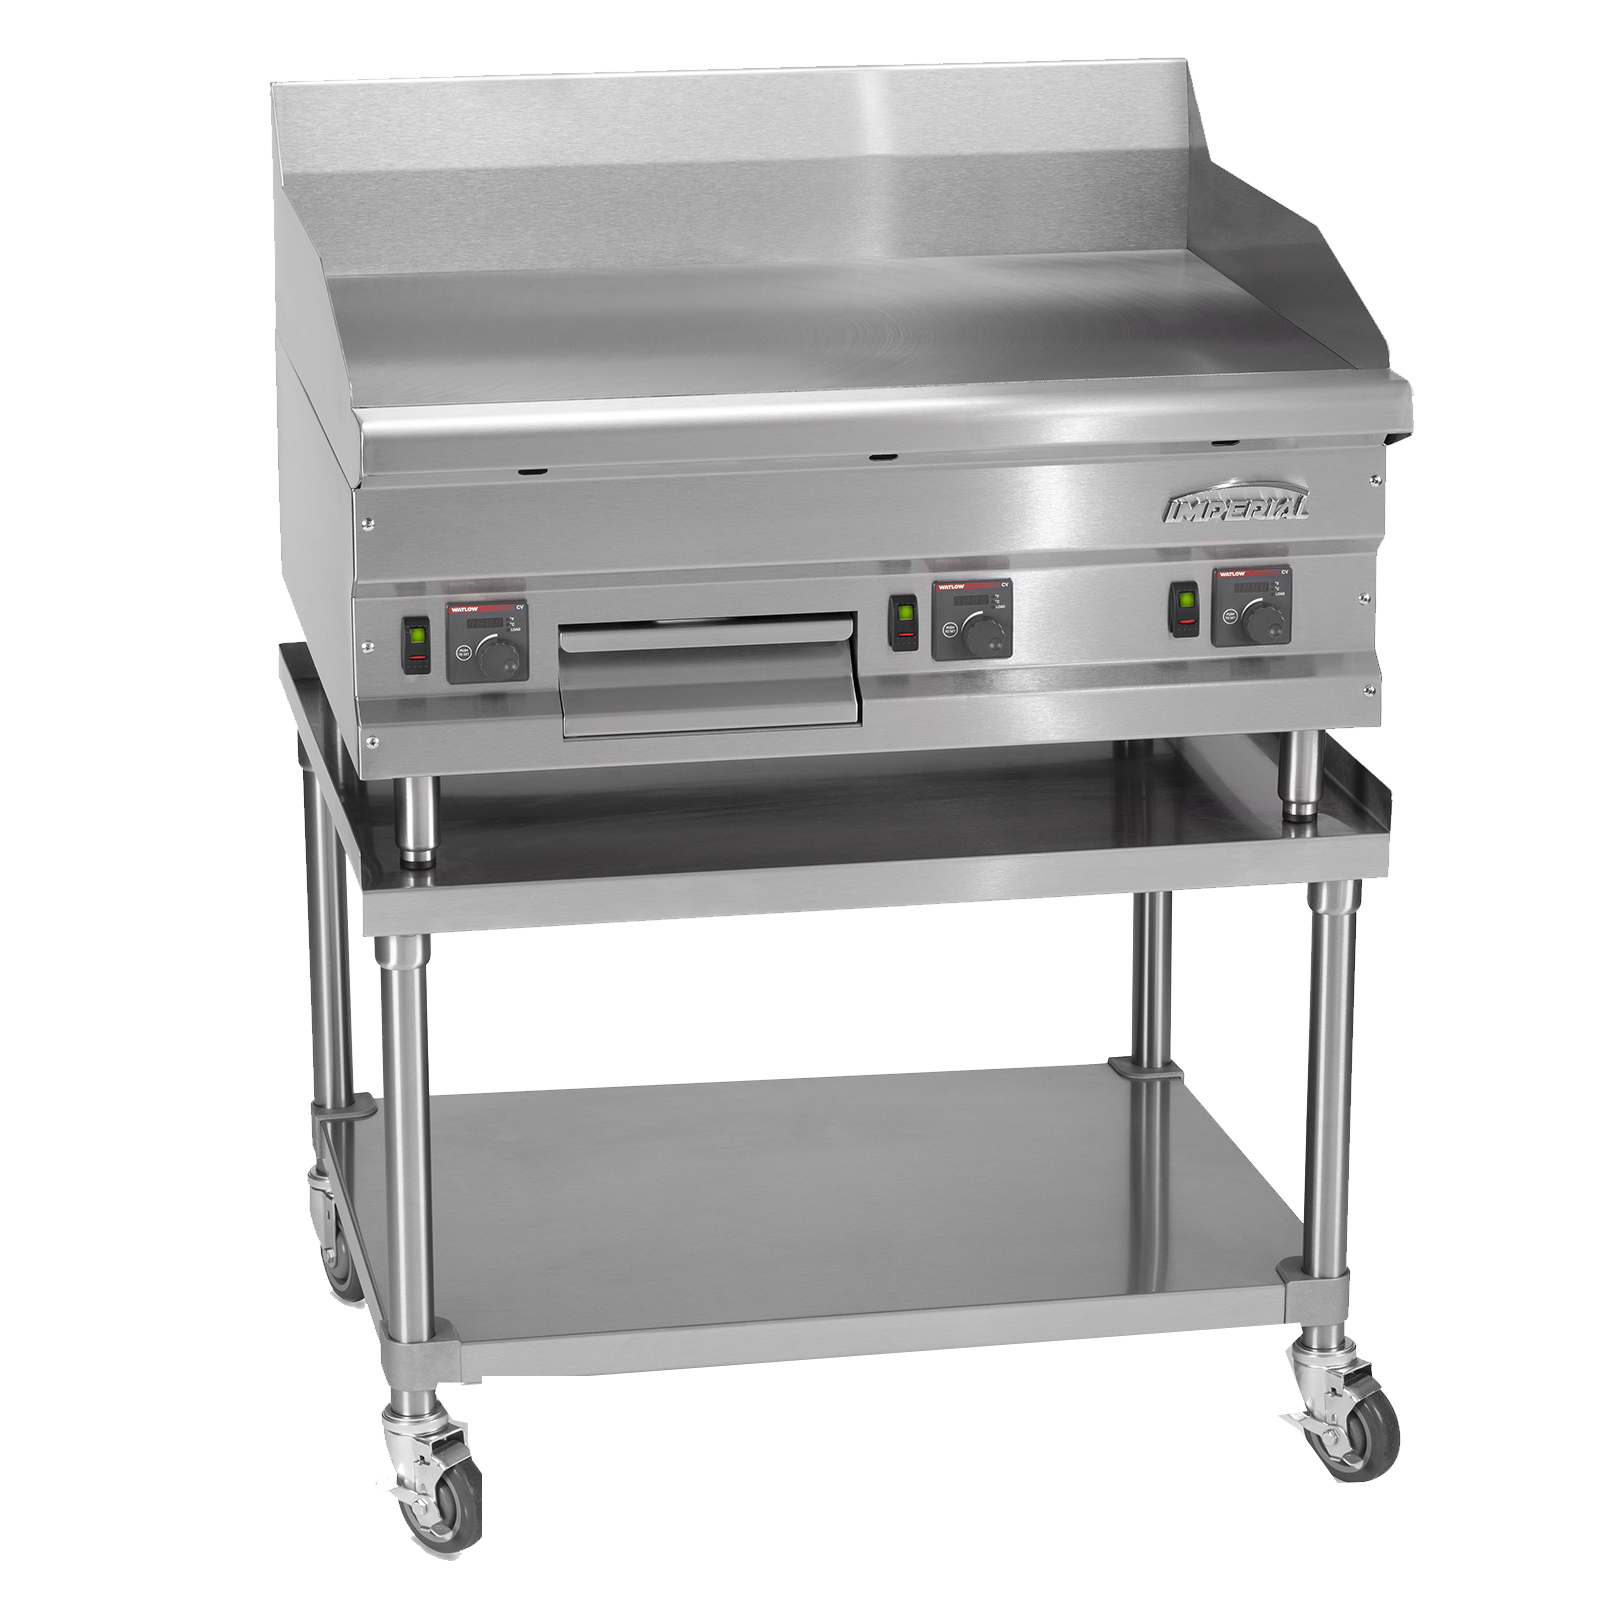 Imperial IHEG-72 griddle, gas, countertop